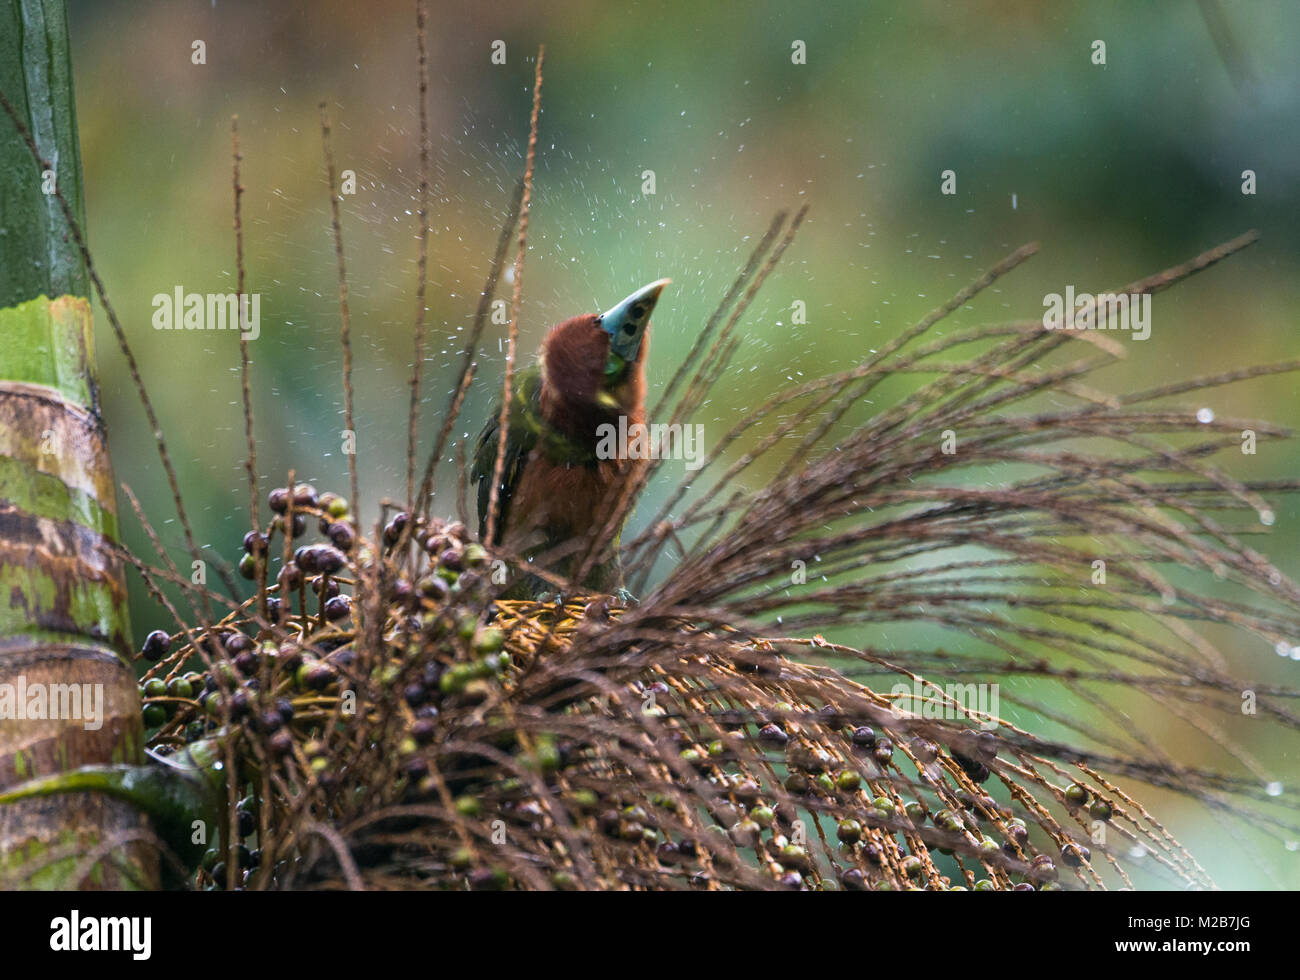 A Spot-billed Toucanet sheds off water in the Atlantic Rainforest - Stock Image